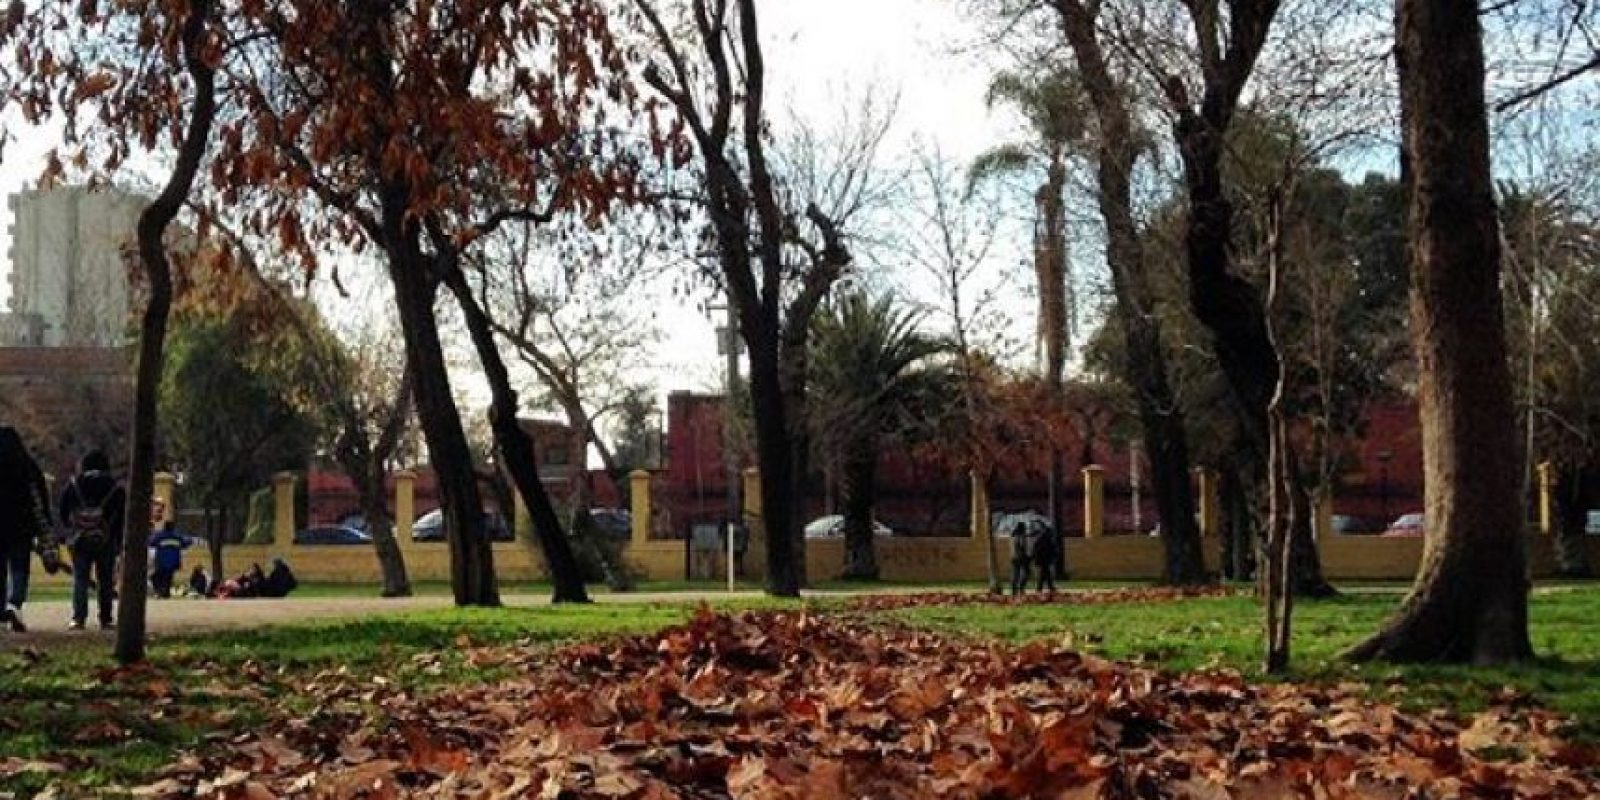 4. Parque Quinta Normal Foto: Instagram.com/tag/search/ParqueQuintaNormal